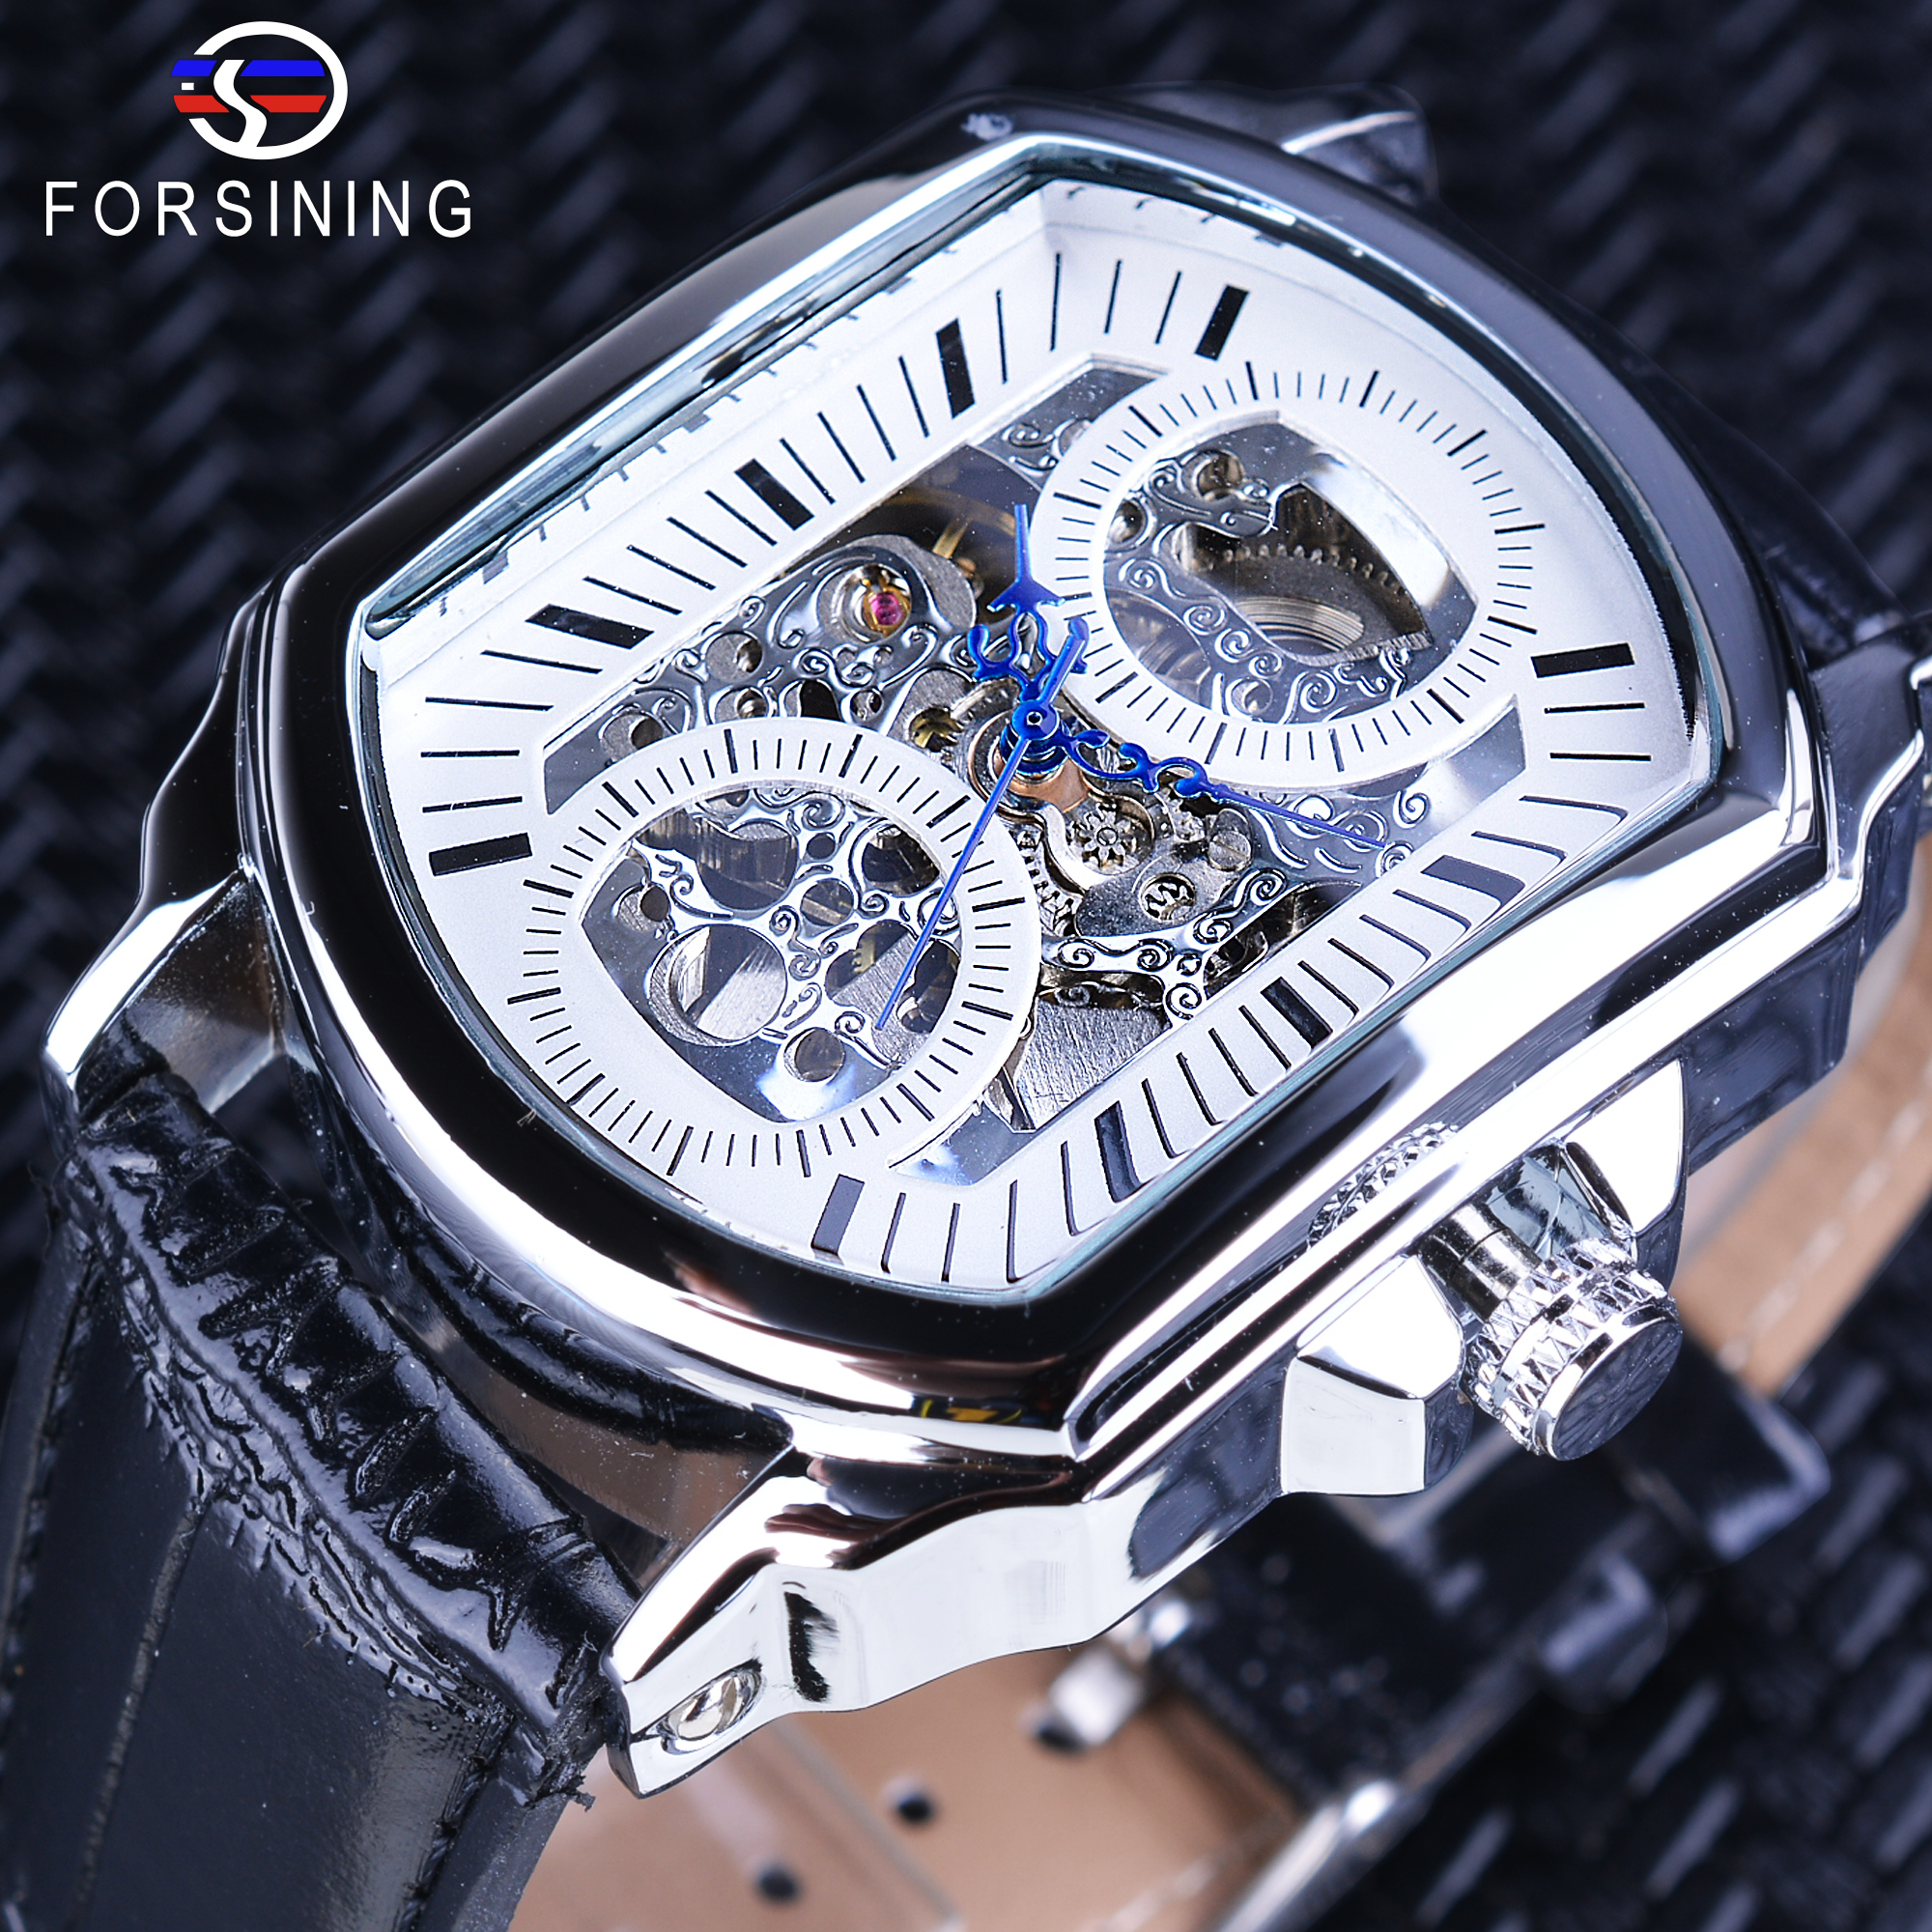 watches emerging chopard sensation l u watchmaking top source in blog an luxury c classic